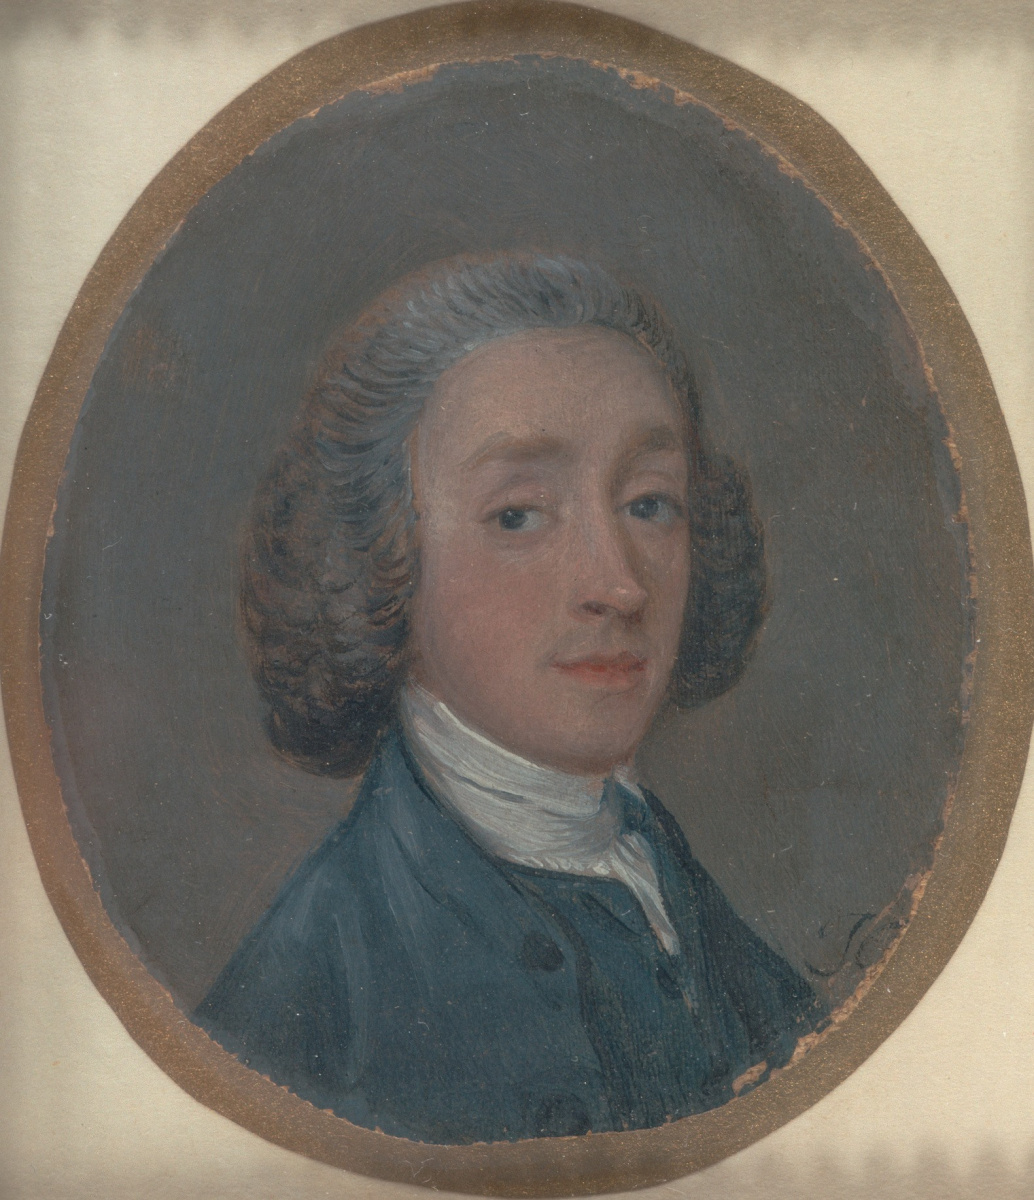 Thomas Gainsborough. Portrait of young man with powdered hair (maybe a self-portrait)